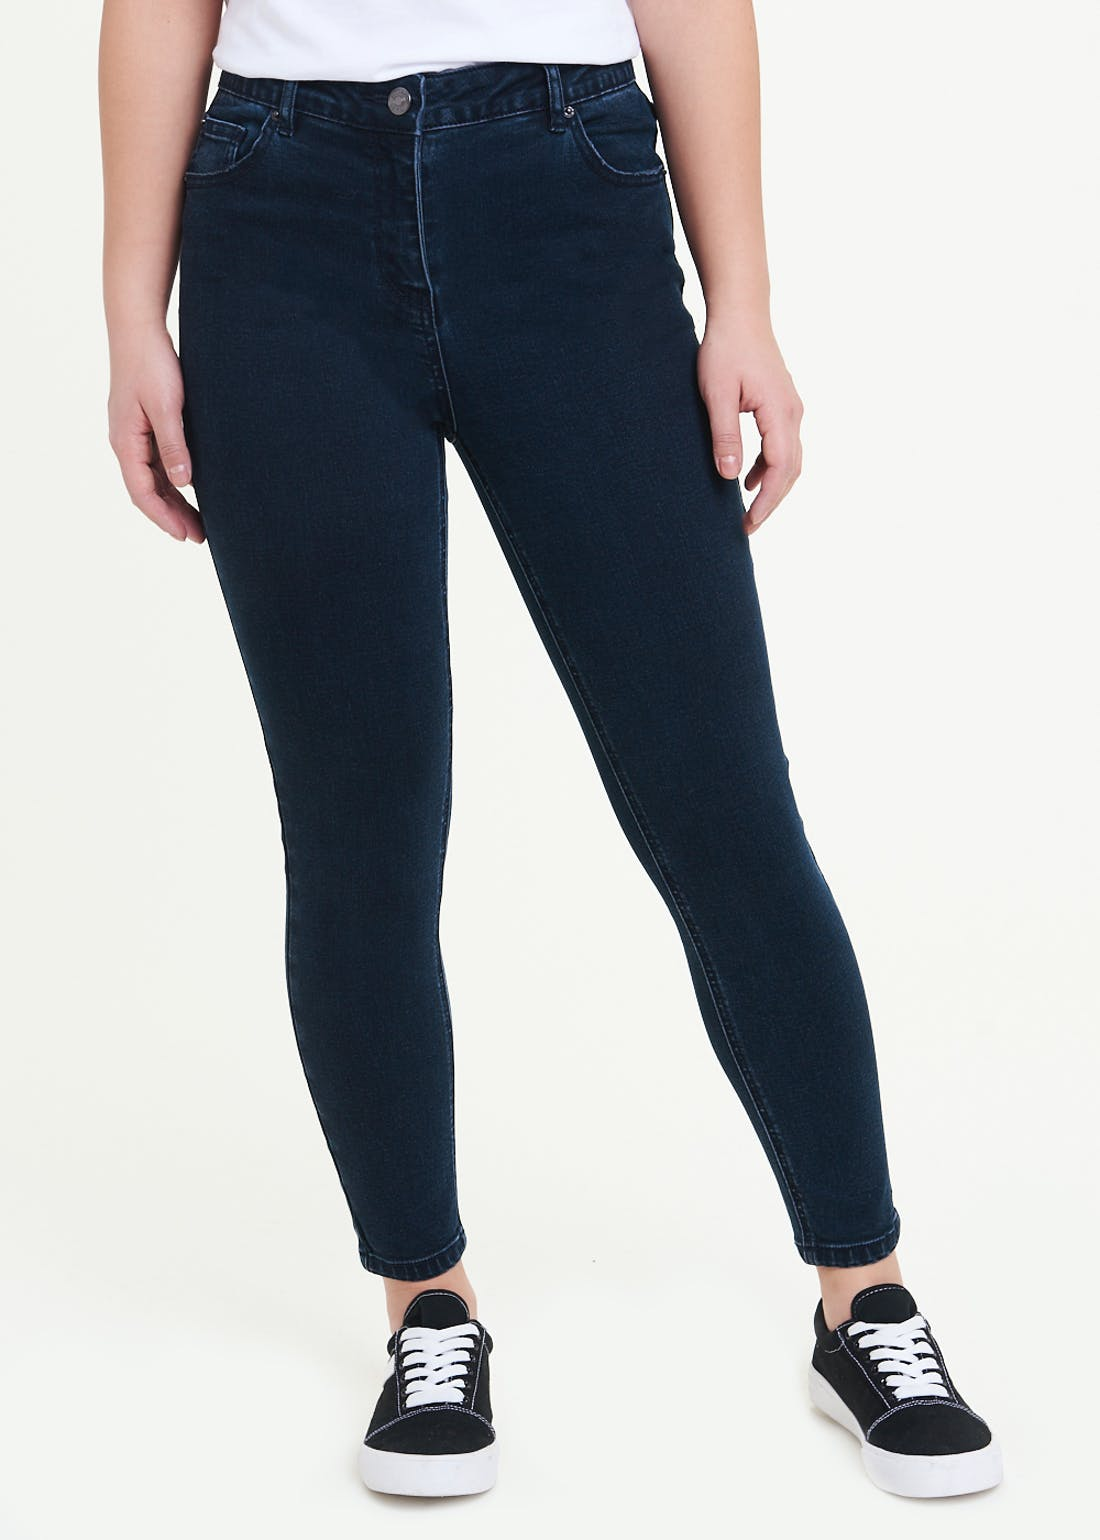 Papaya Petite April Super Skinny Jeans